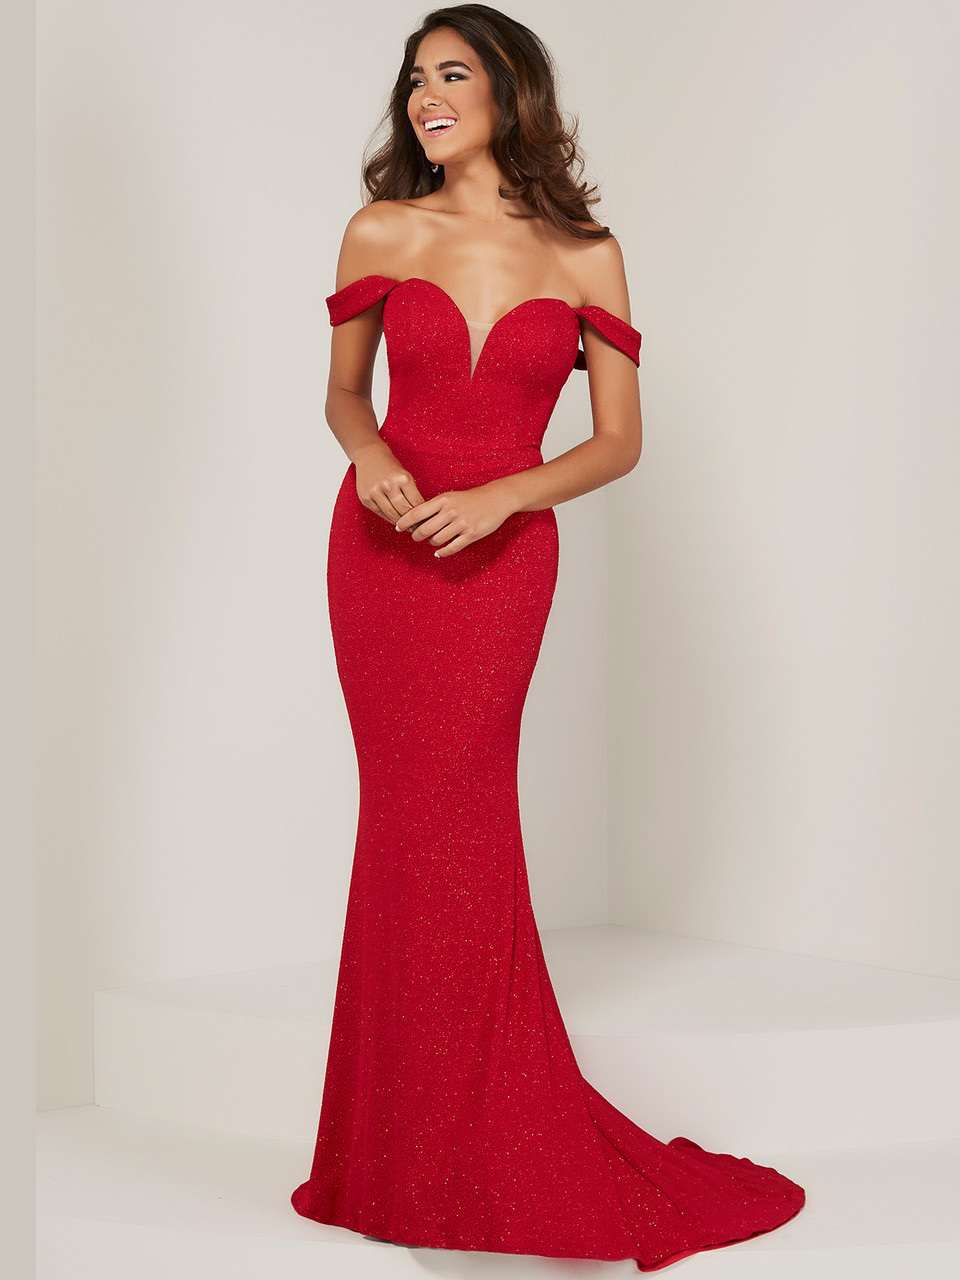 4d480415d7d4 Off The Shoulder Tiffany Designs 16353 Prom Dress - PromHeadquarters.com